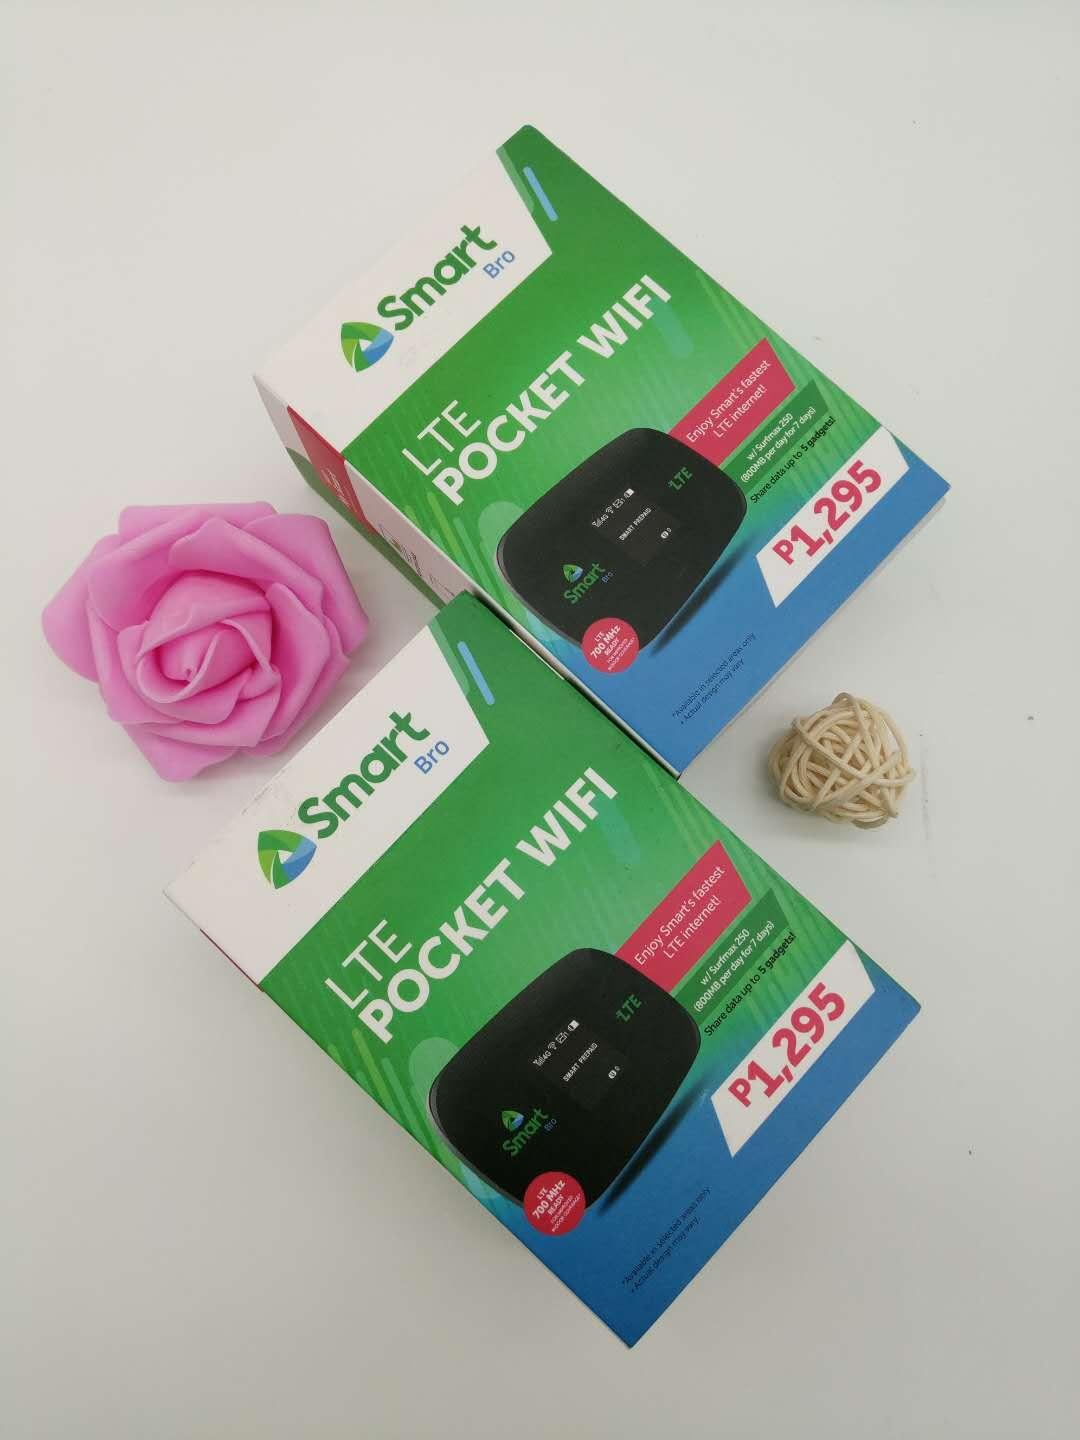 SMART LTE POCKET WiFi WiTH FREE SURF MAX 250 removable battery